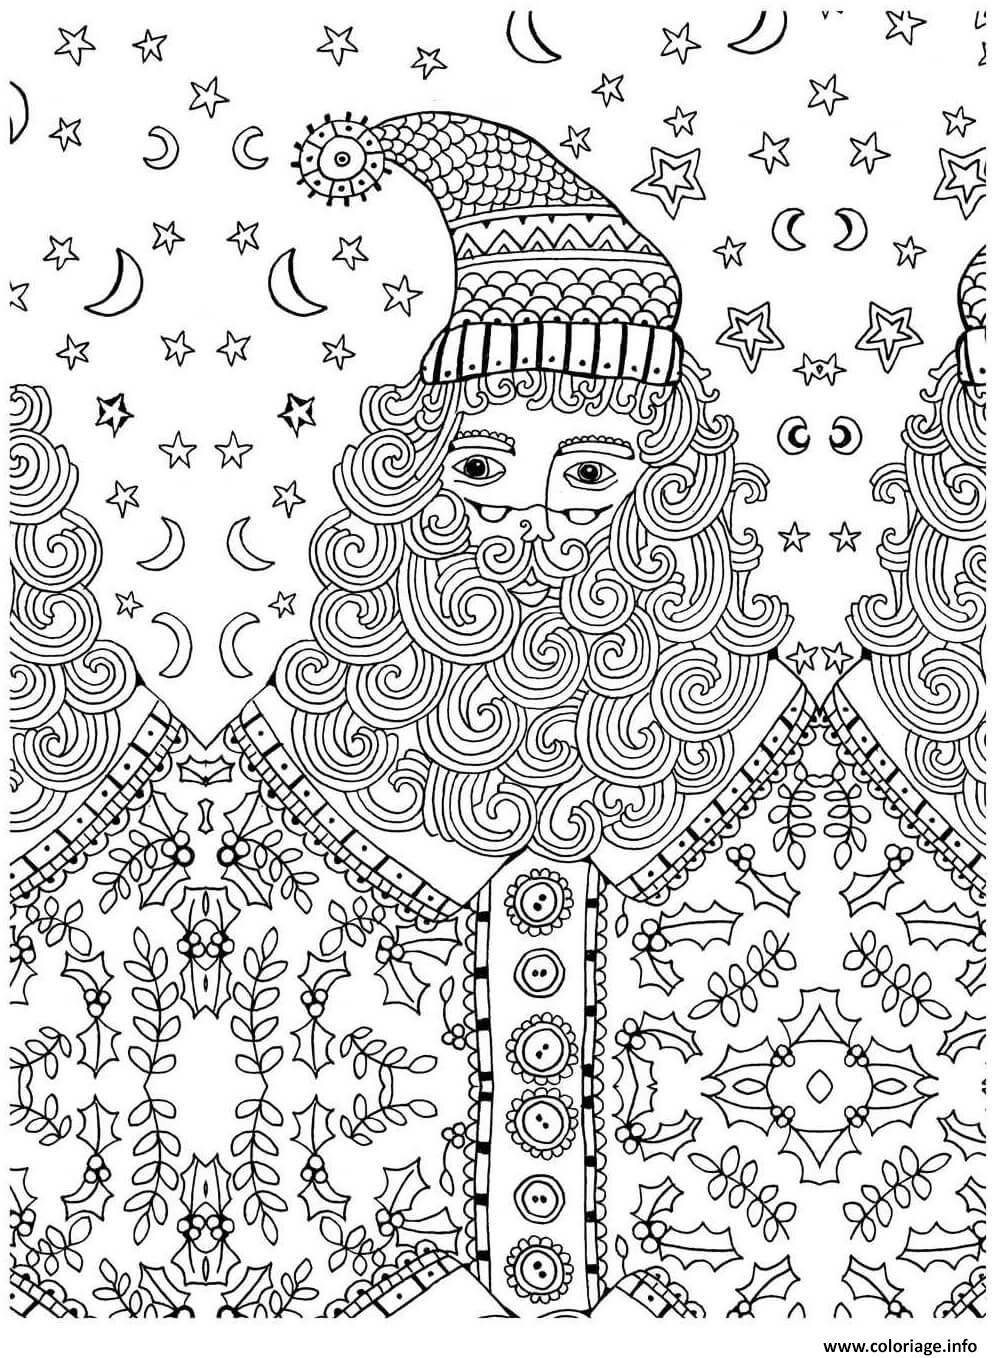 Coloriage pere noel adulte anti stress dessin - Coloriage anti stress pour adulte a imprimer ...